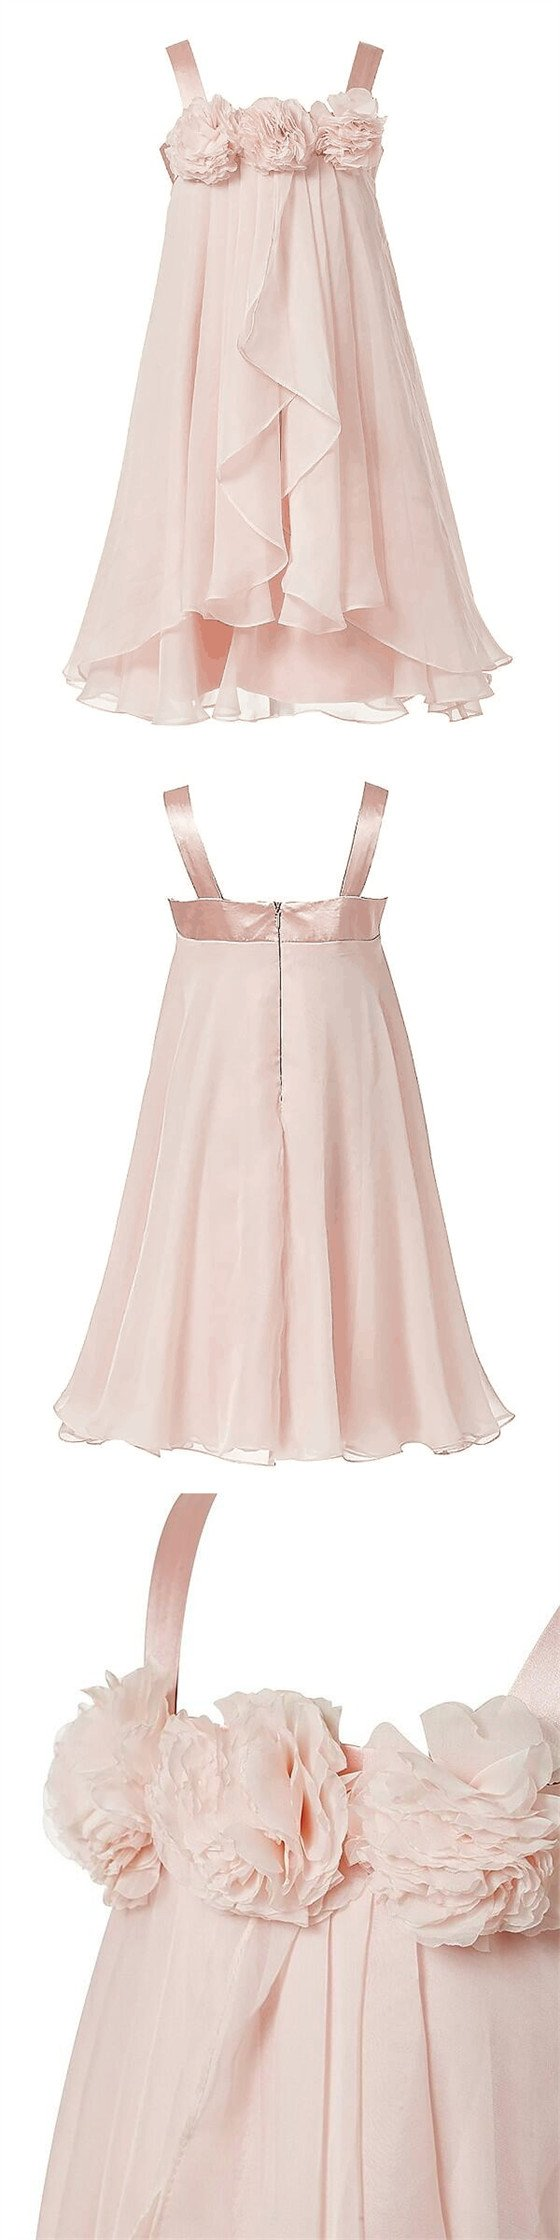 55fff2b111f Pink Straps Zipper Up Flower Girl Dresses With Flower Appliques